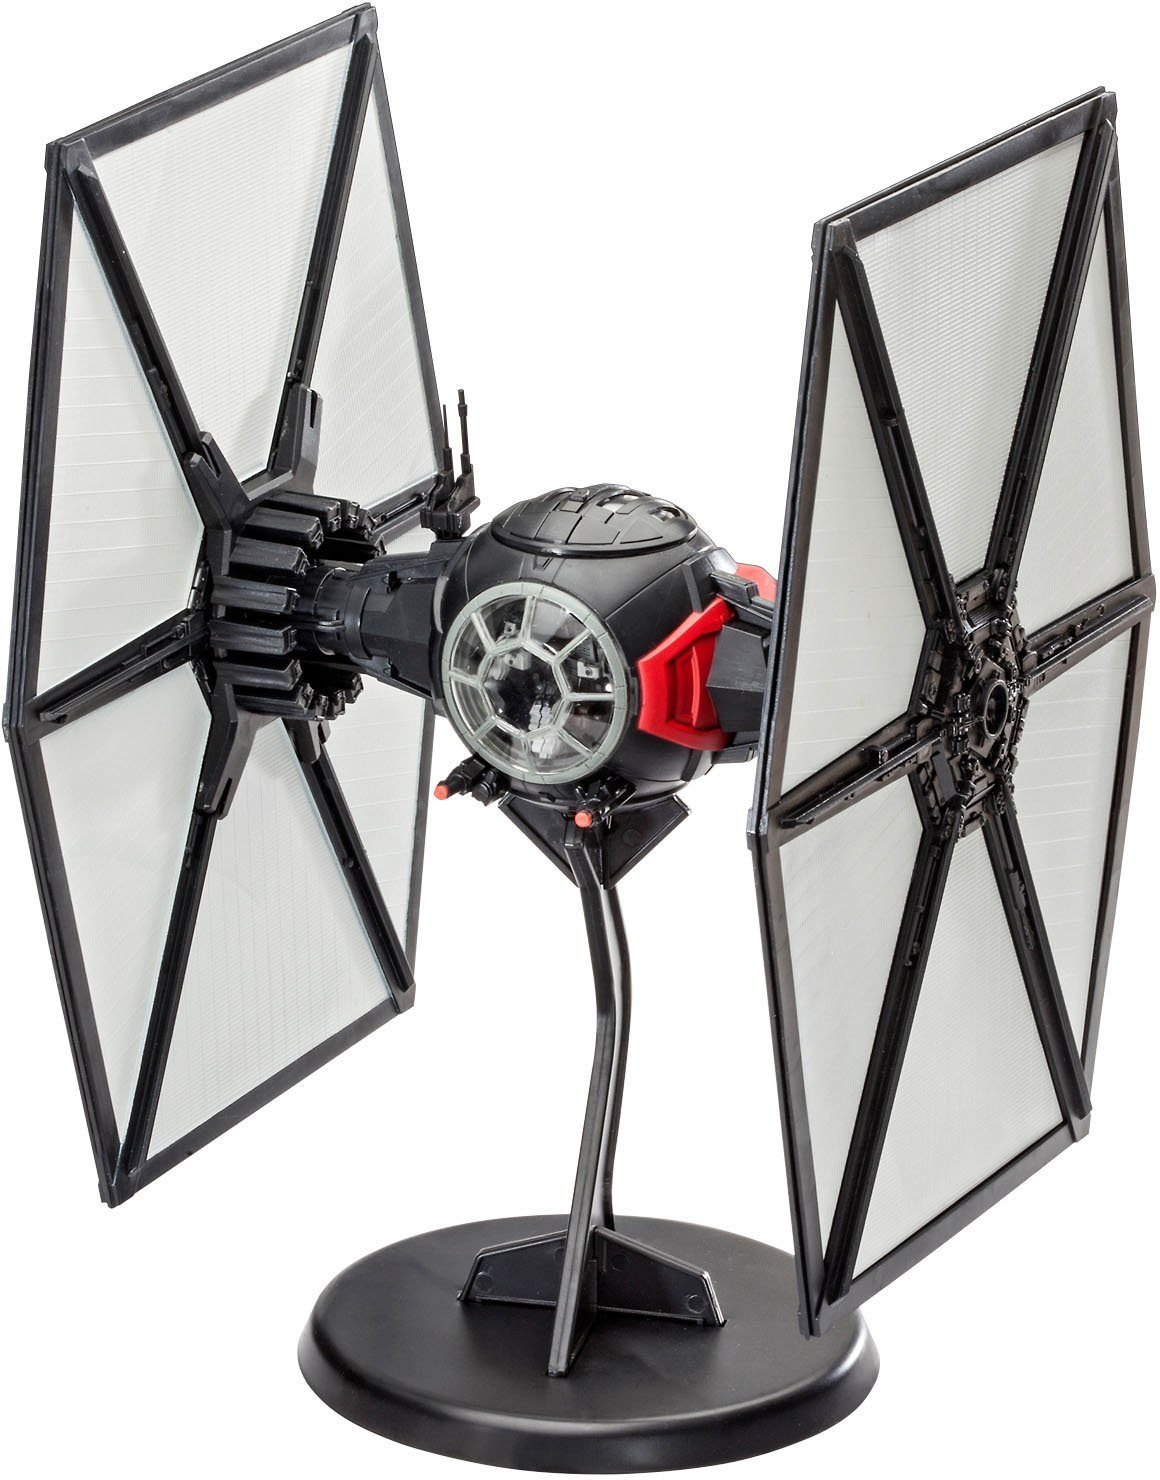 Revell® Modellbausatz Raumjäger, Maßstab 1:35, »Disney Star Wars Special Forces TIE Fighter™«